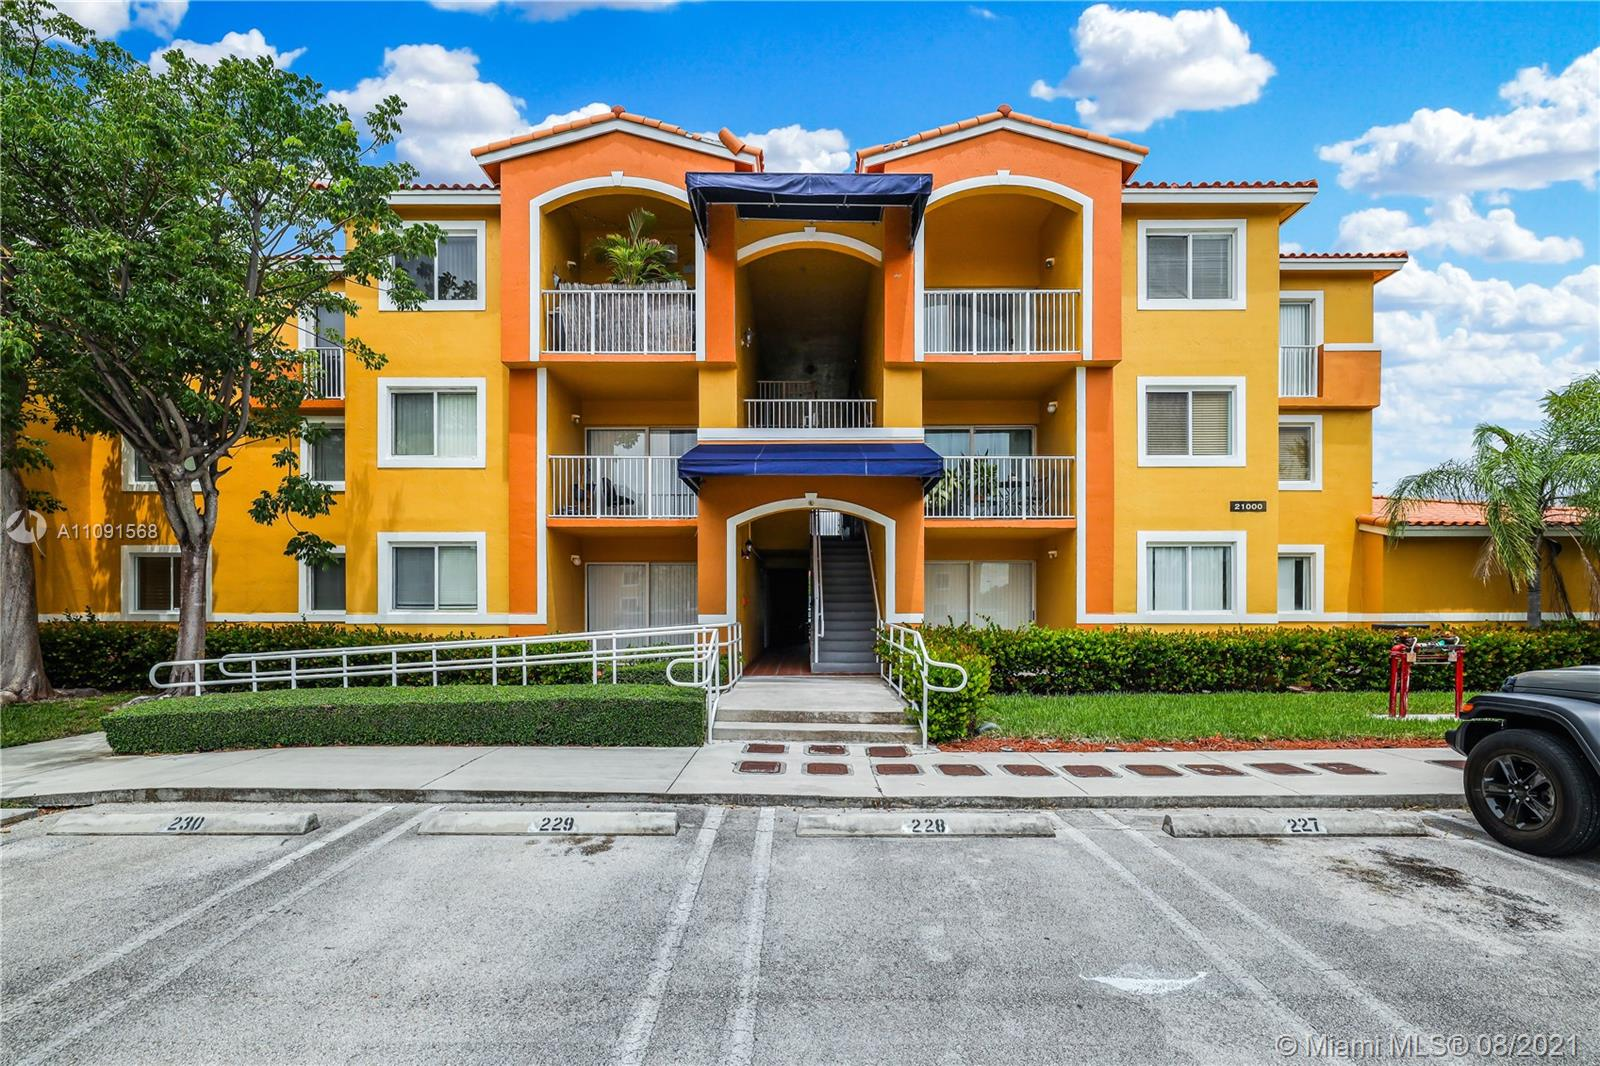 Cutler Bay Unit 1 Bedroom and 1 Bathroom with high ceilings, tile and laminate flooring, granite countertops in the kitchen. Washer and Dryer inside the unit and one parking space #262. Currently, there's a tenant in the Unit that will finish her lease at the end of September. OPEN ATTACHMENTS TO SEE 2021 BUDGET. READ BROKER REMARKS FOR SHOWING DAYS. USE SHOW ASSIST